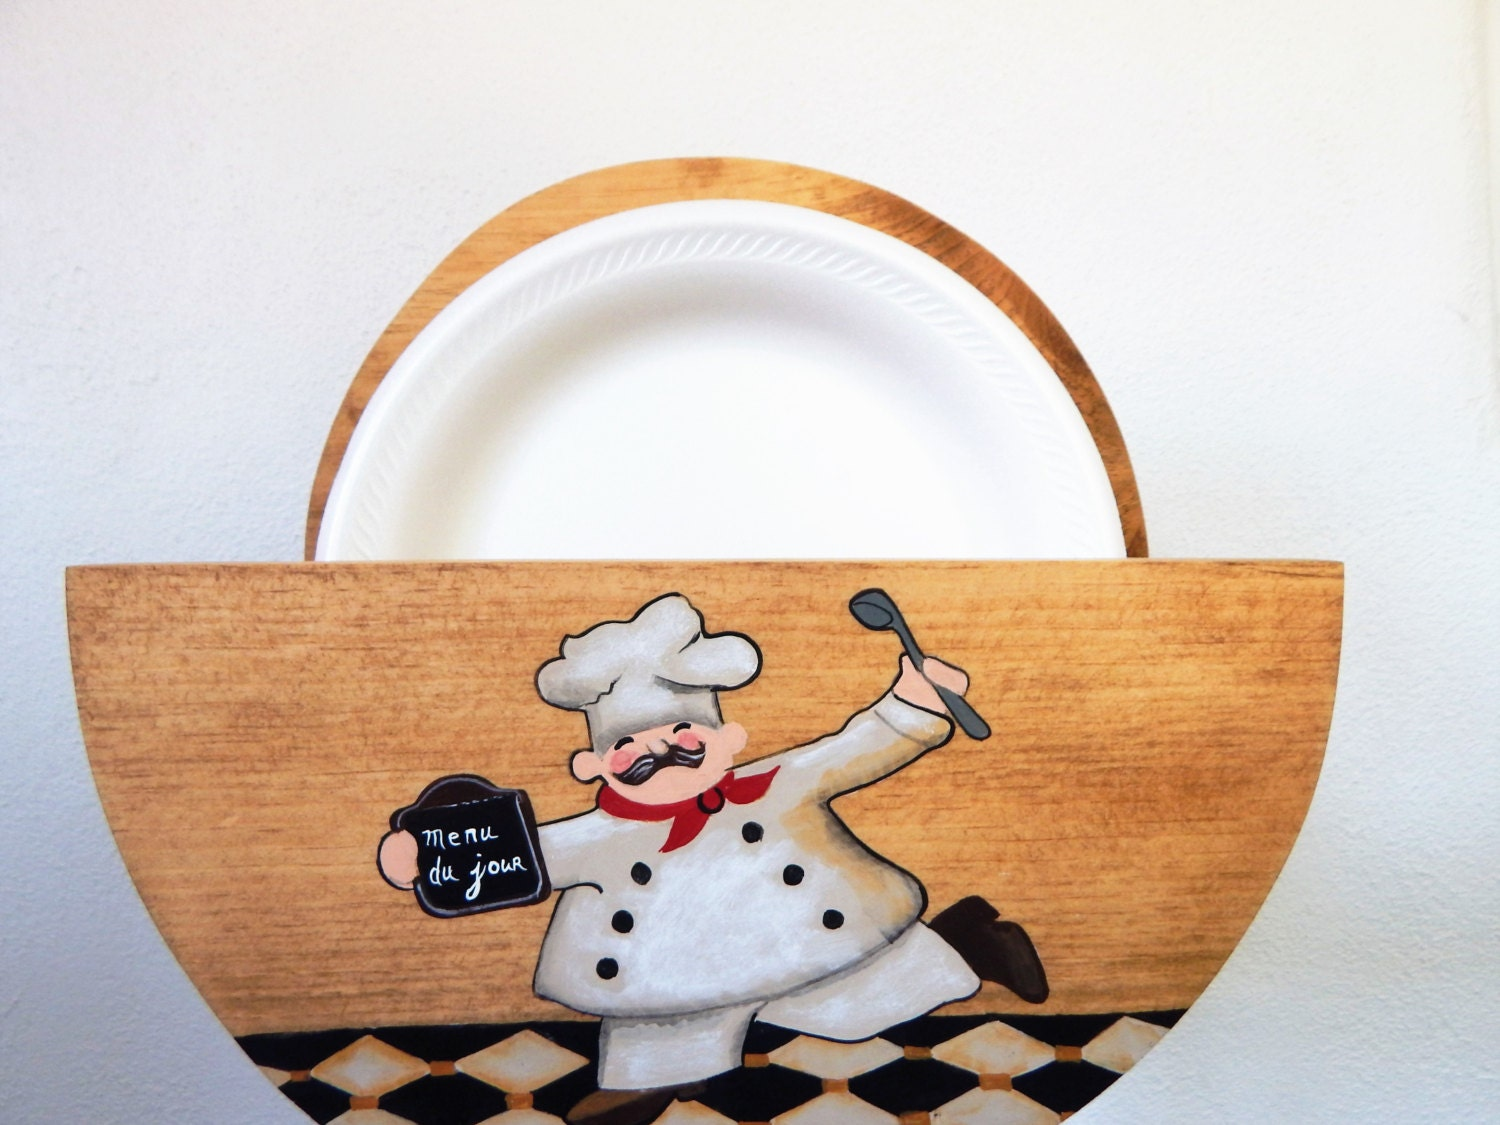 Paper Plate Holder Wooden Chef Kitchen Decor Storage Plates Fat Home